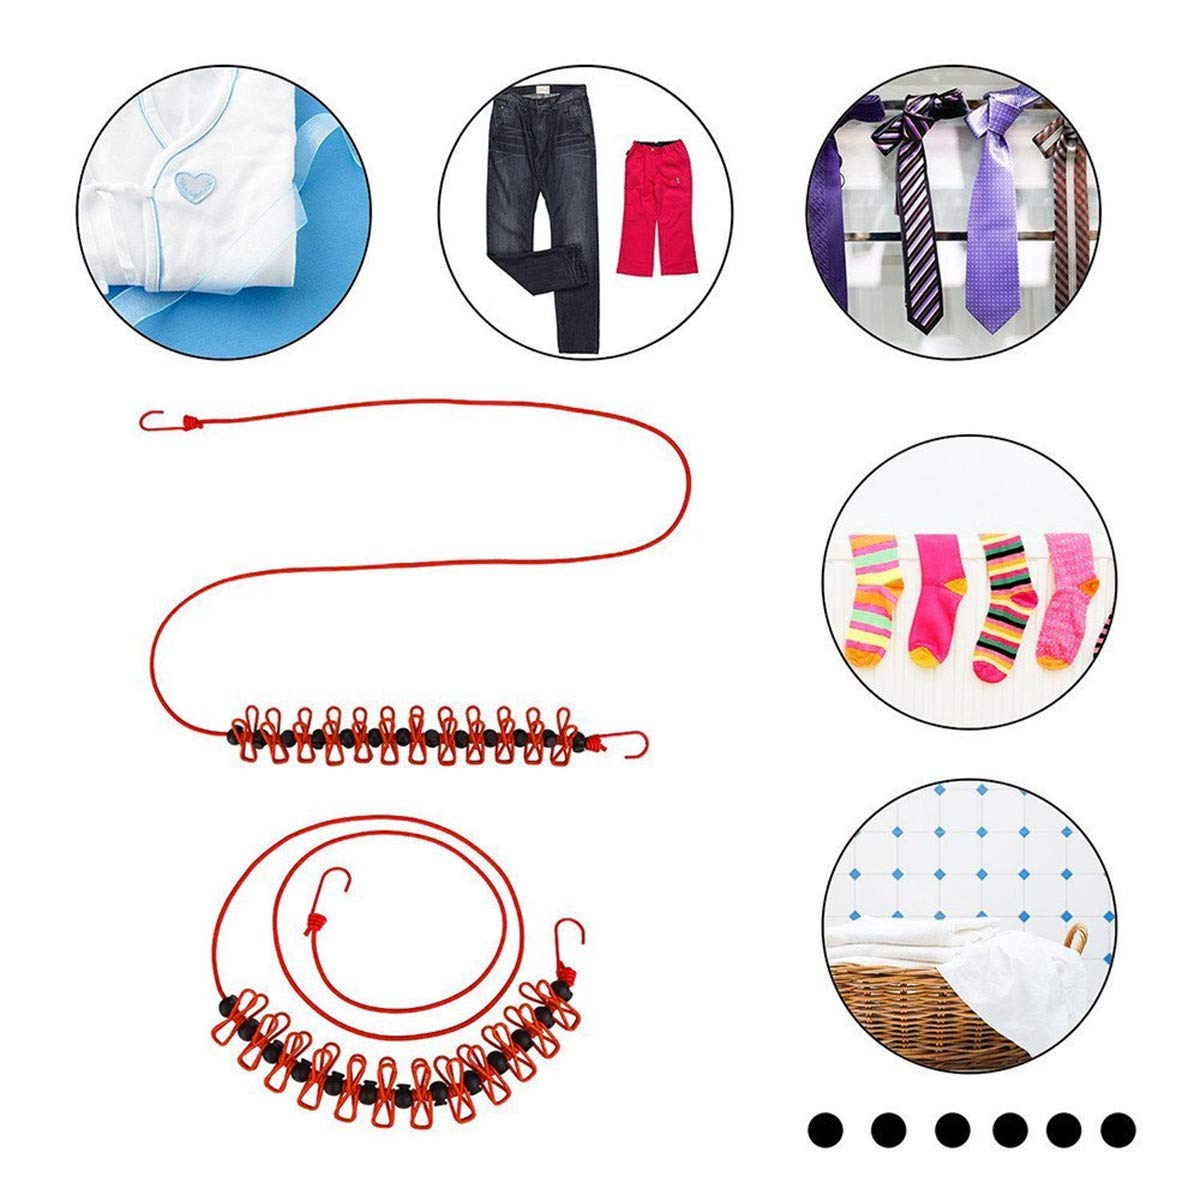 SUMMERDAISY Pack of 2 Retractable Clotheslines Portable Windproof Clotheslines Adjustable Clothes Line with 12pcs Clothespins for Outdoor Indoor Home Travel Laundry Drying Blue/&Red Color SD-5